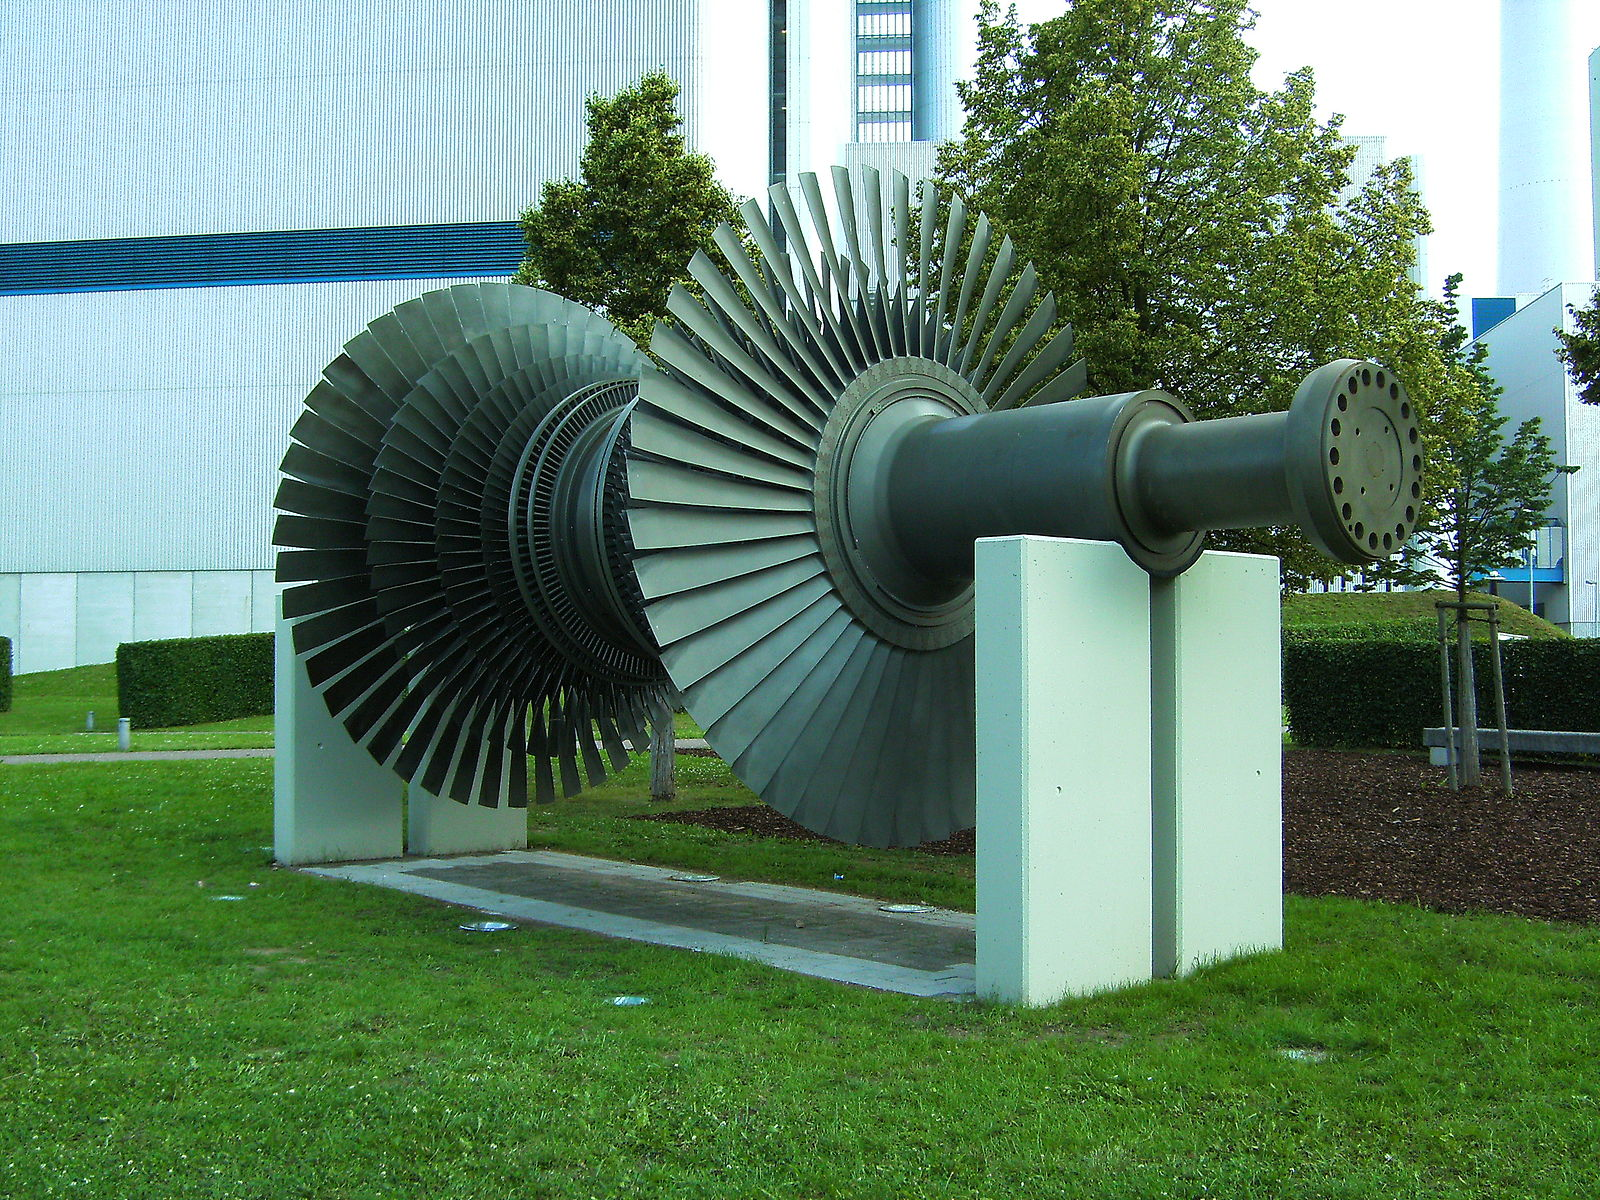 File:Altbach Power Plant Turbine on display.JPG